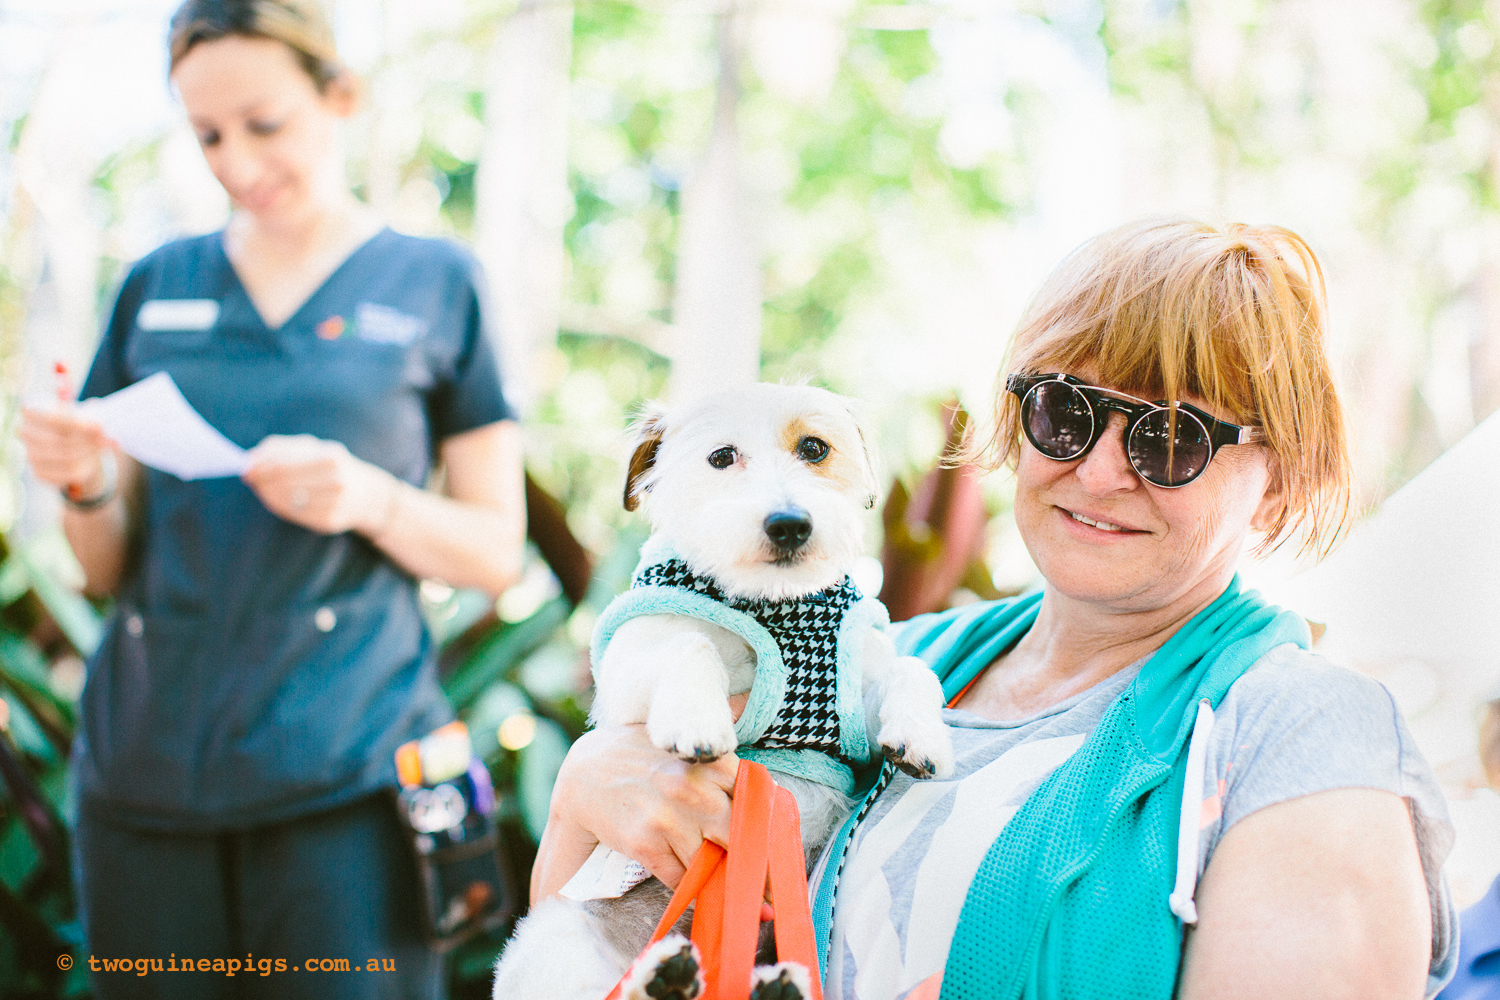 twoguineapigs_pet_photography_kxfestival_ppvh_20141012_1500-17.jpg